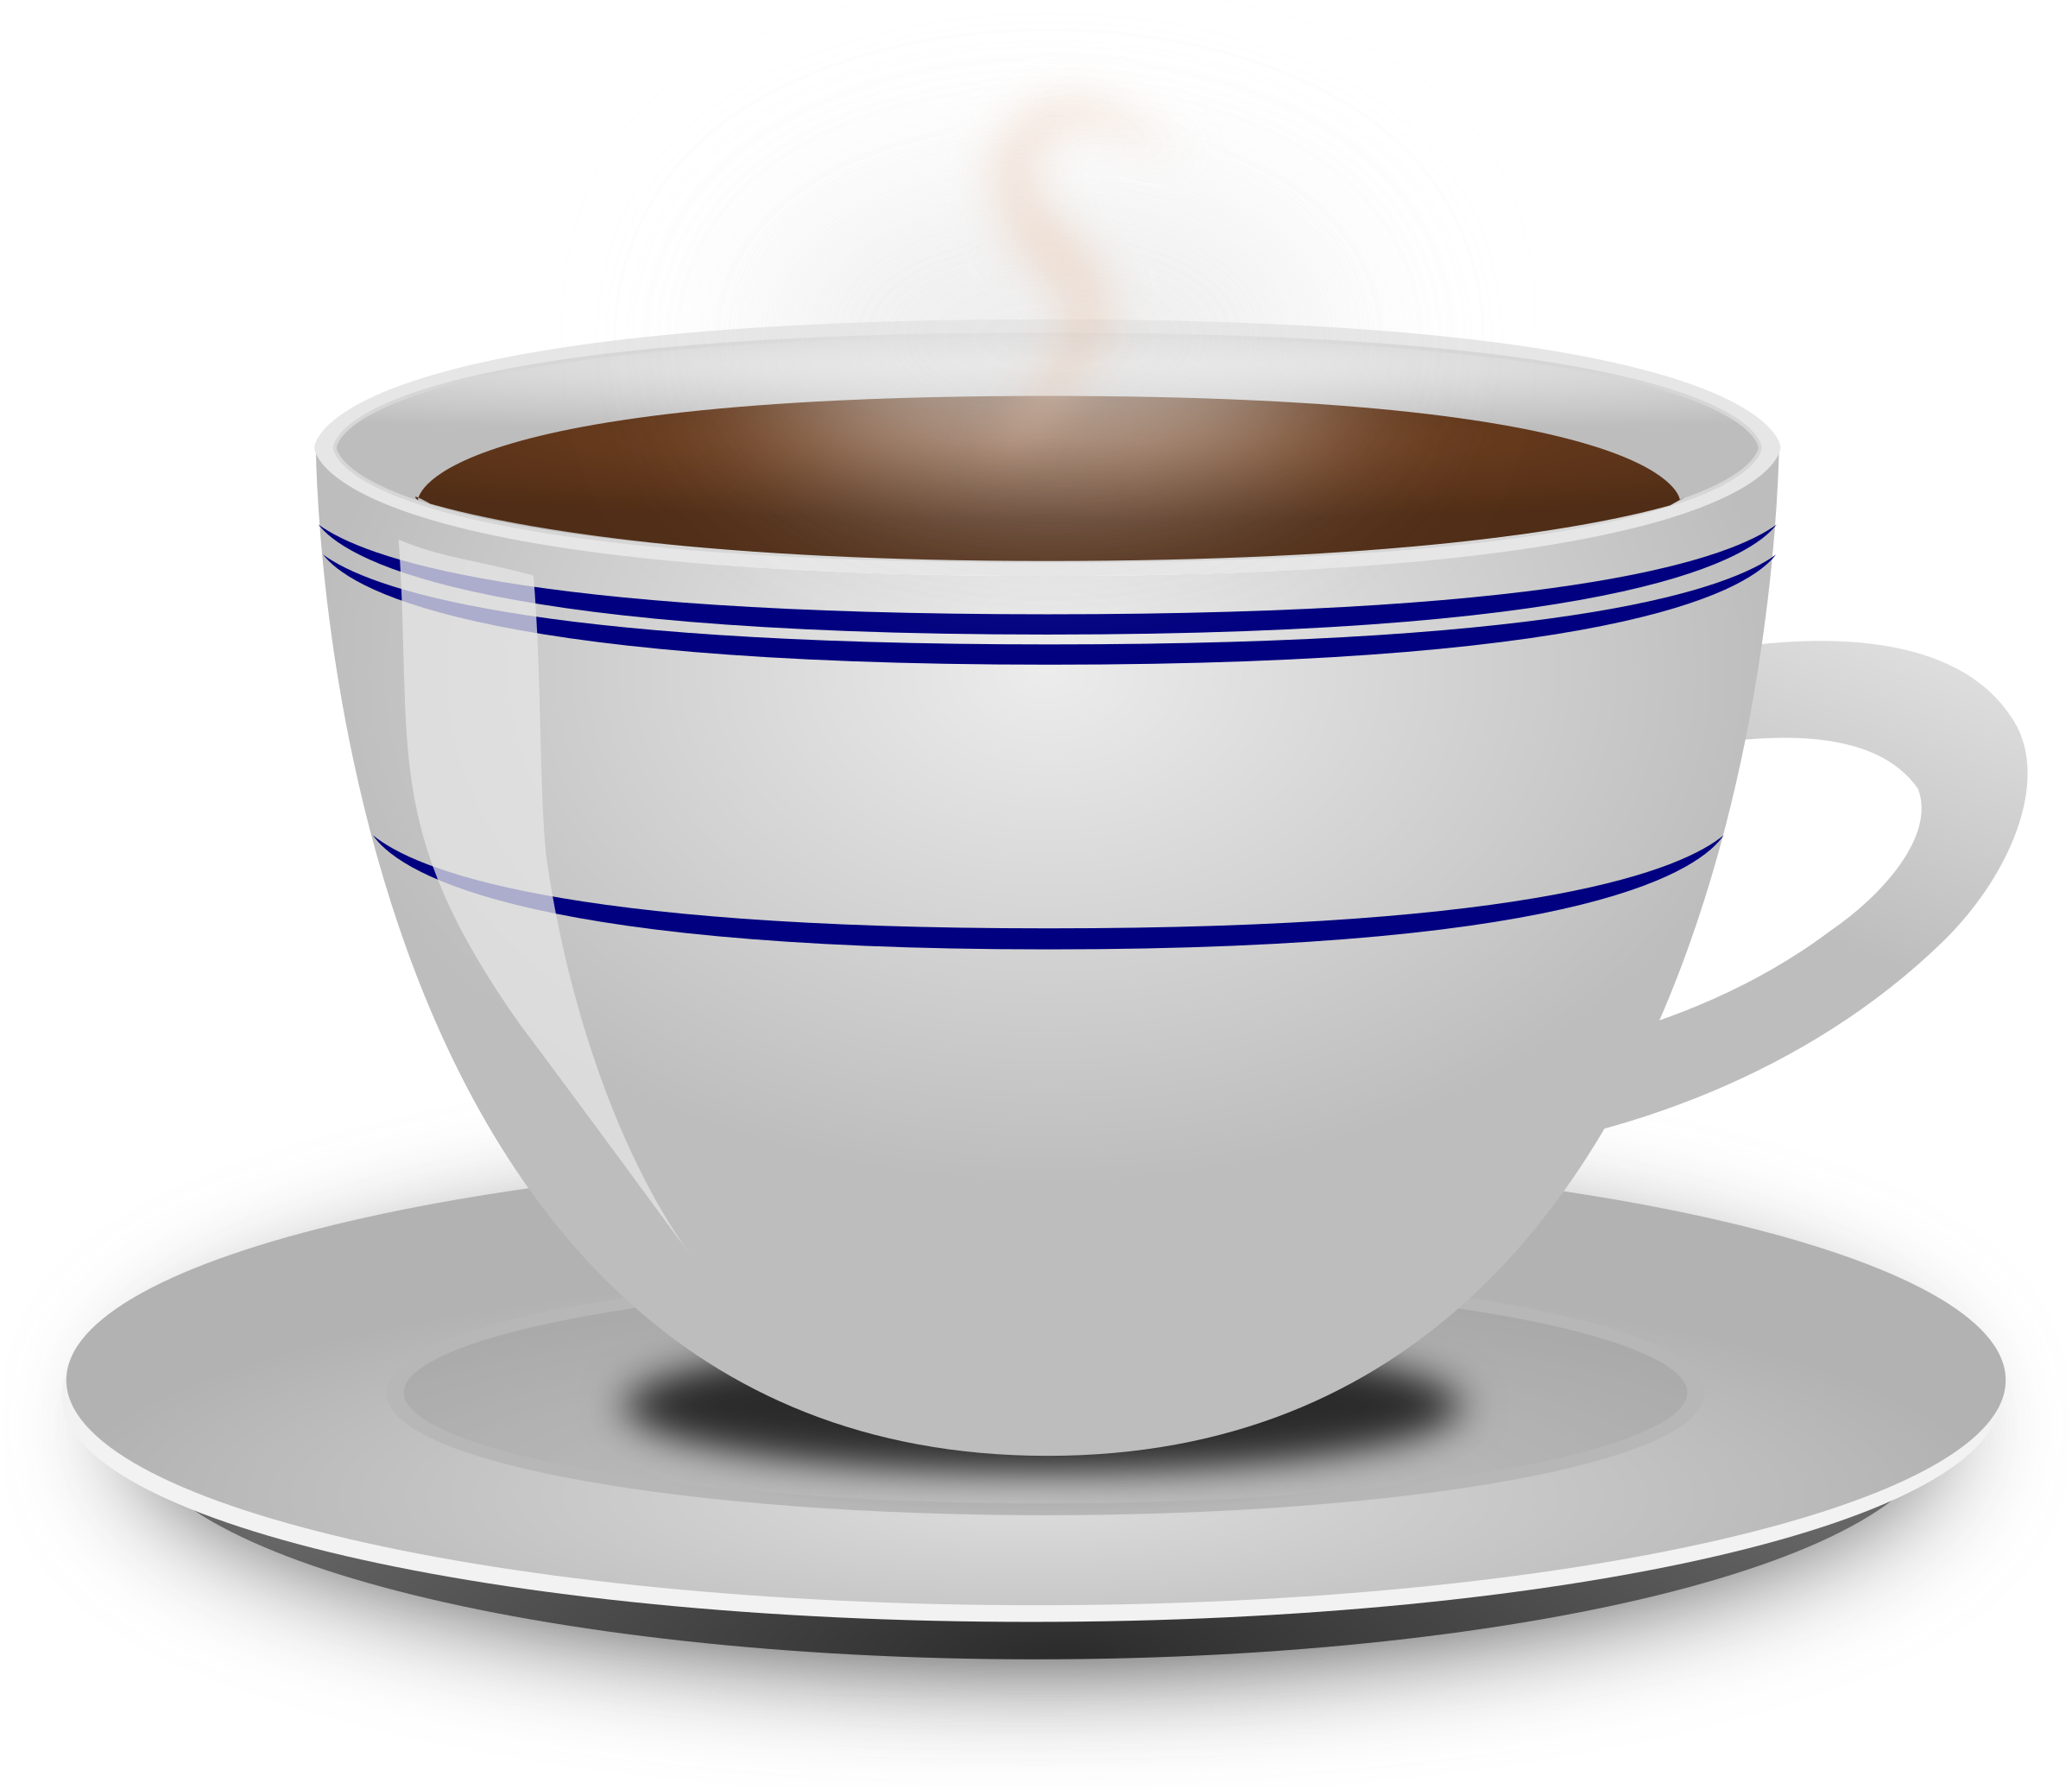 Cup of coffee big. Mug clipart steam clipart